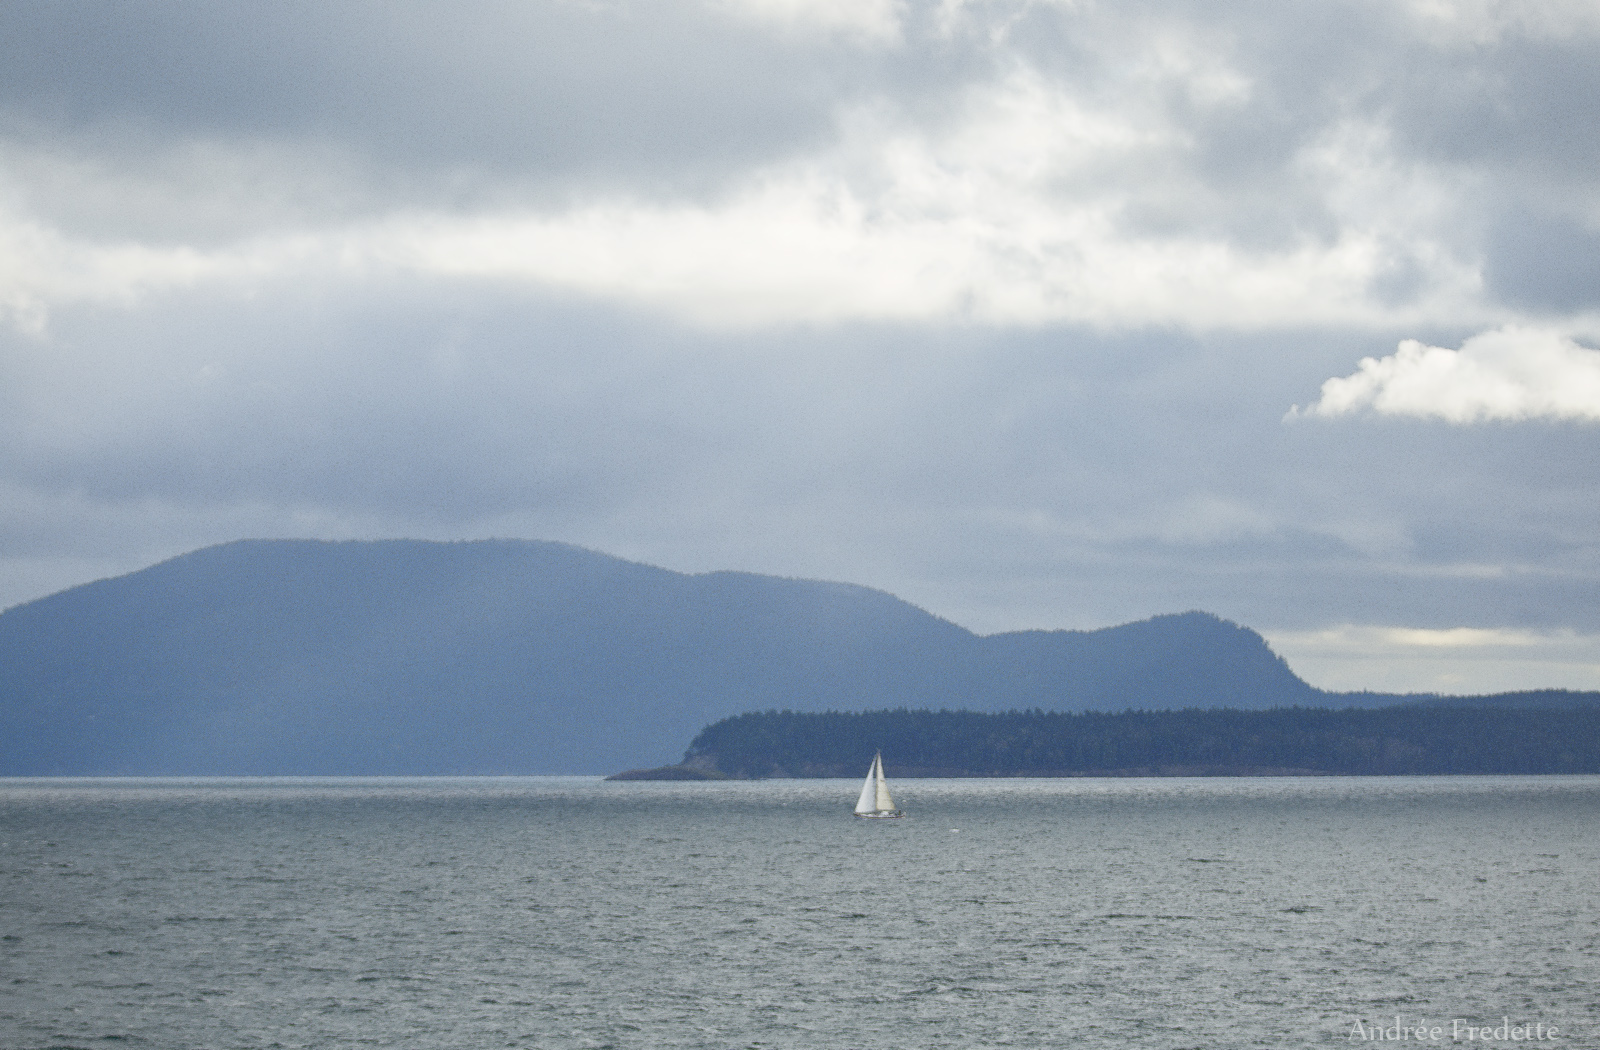 The straggler, in the Orcas sailing race. Photo by Andrée Fredette